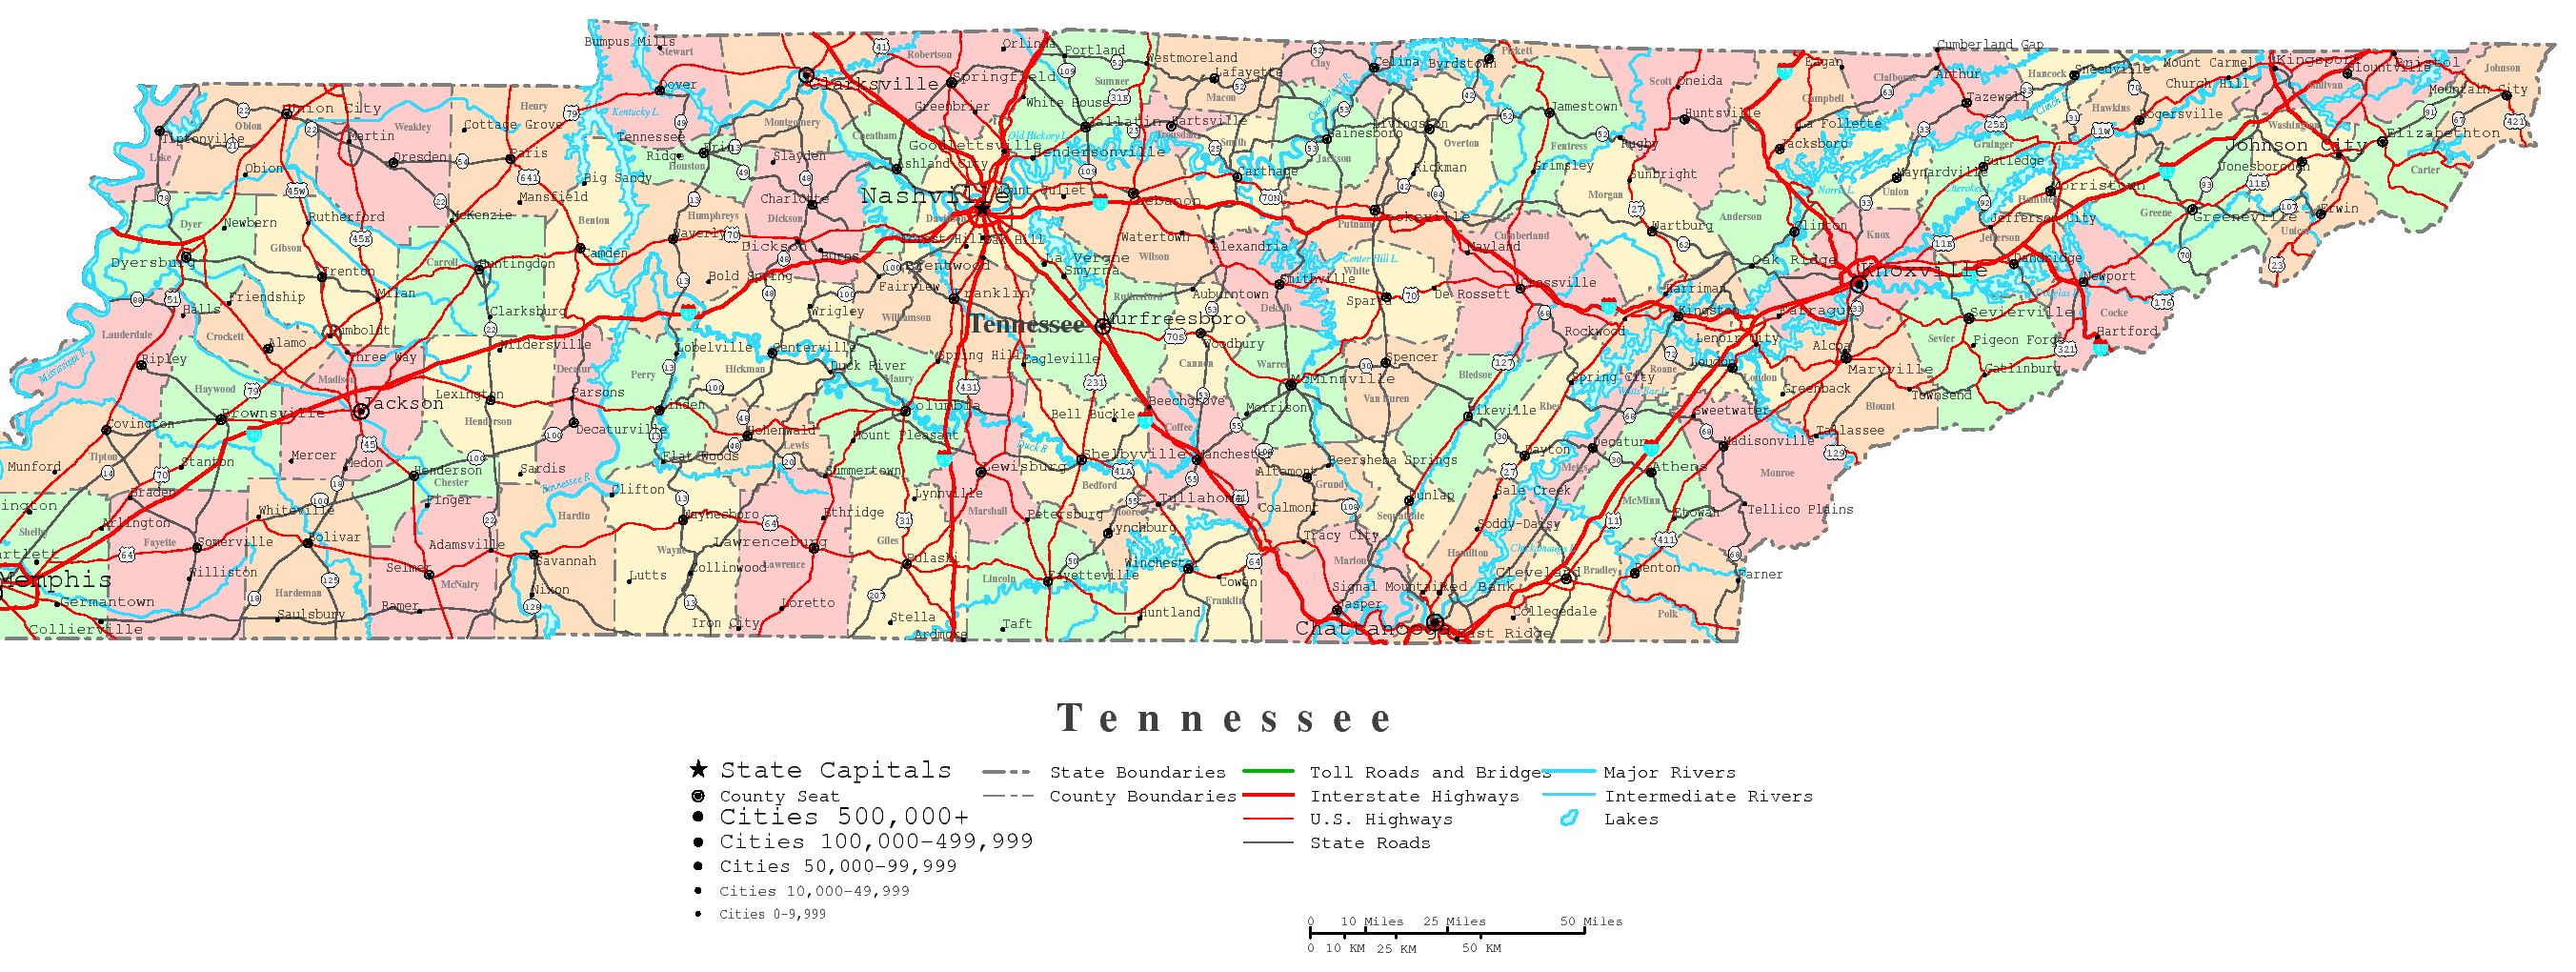 Tn State Map With Cities.Tennessee Printable Map